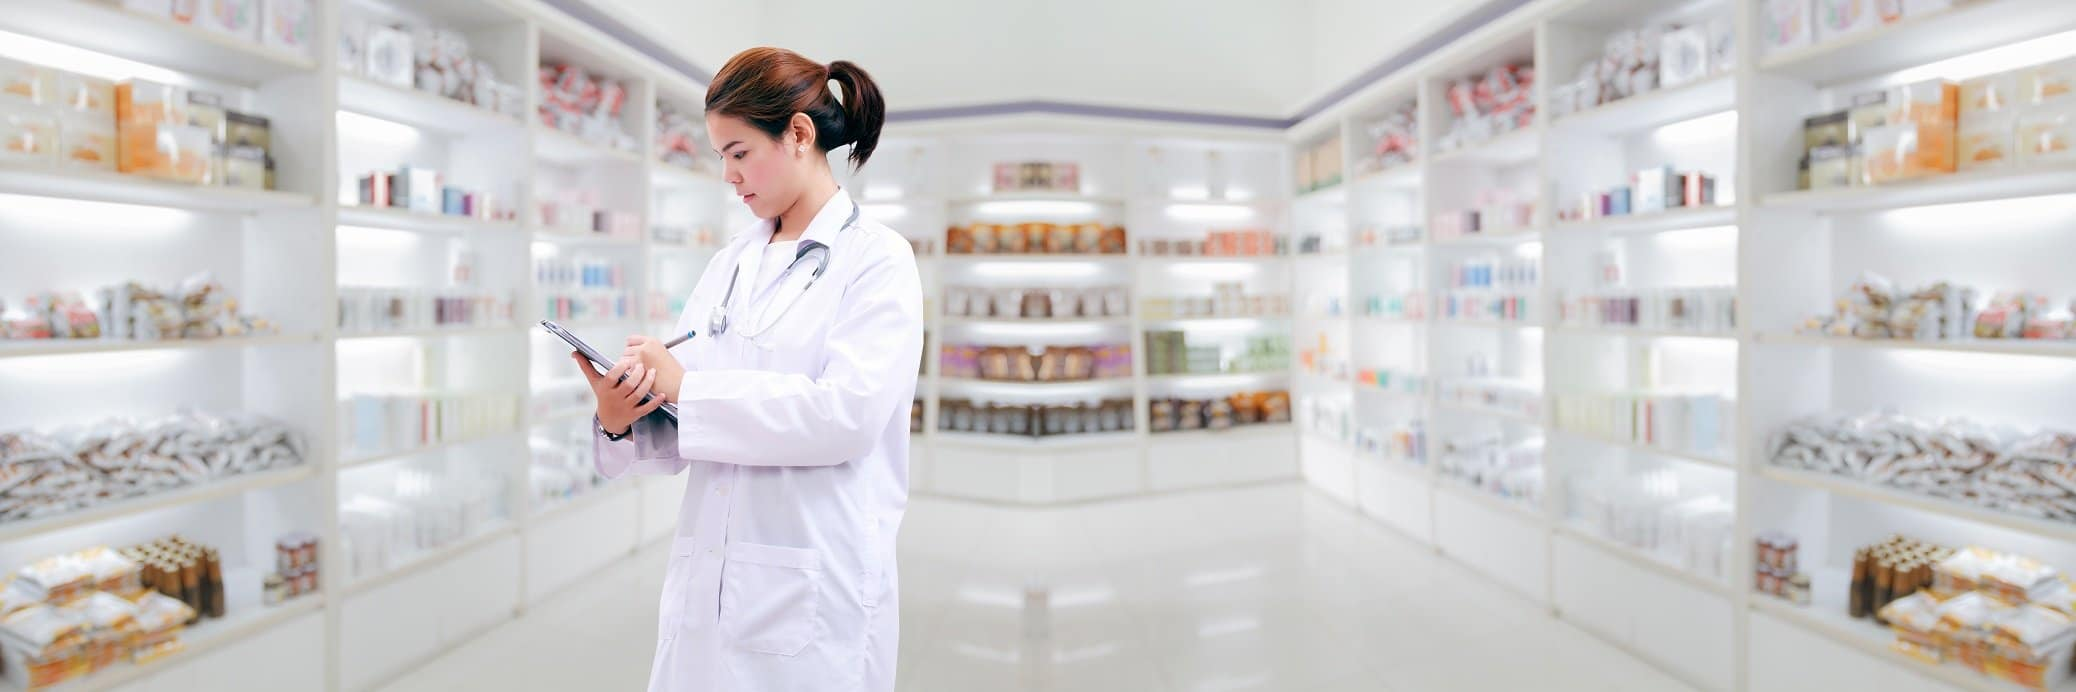 penalties not reporting drug shortages